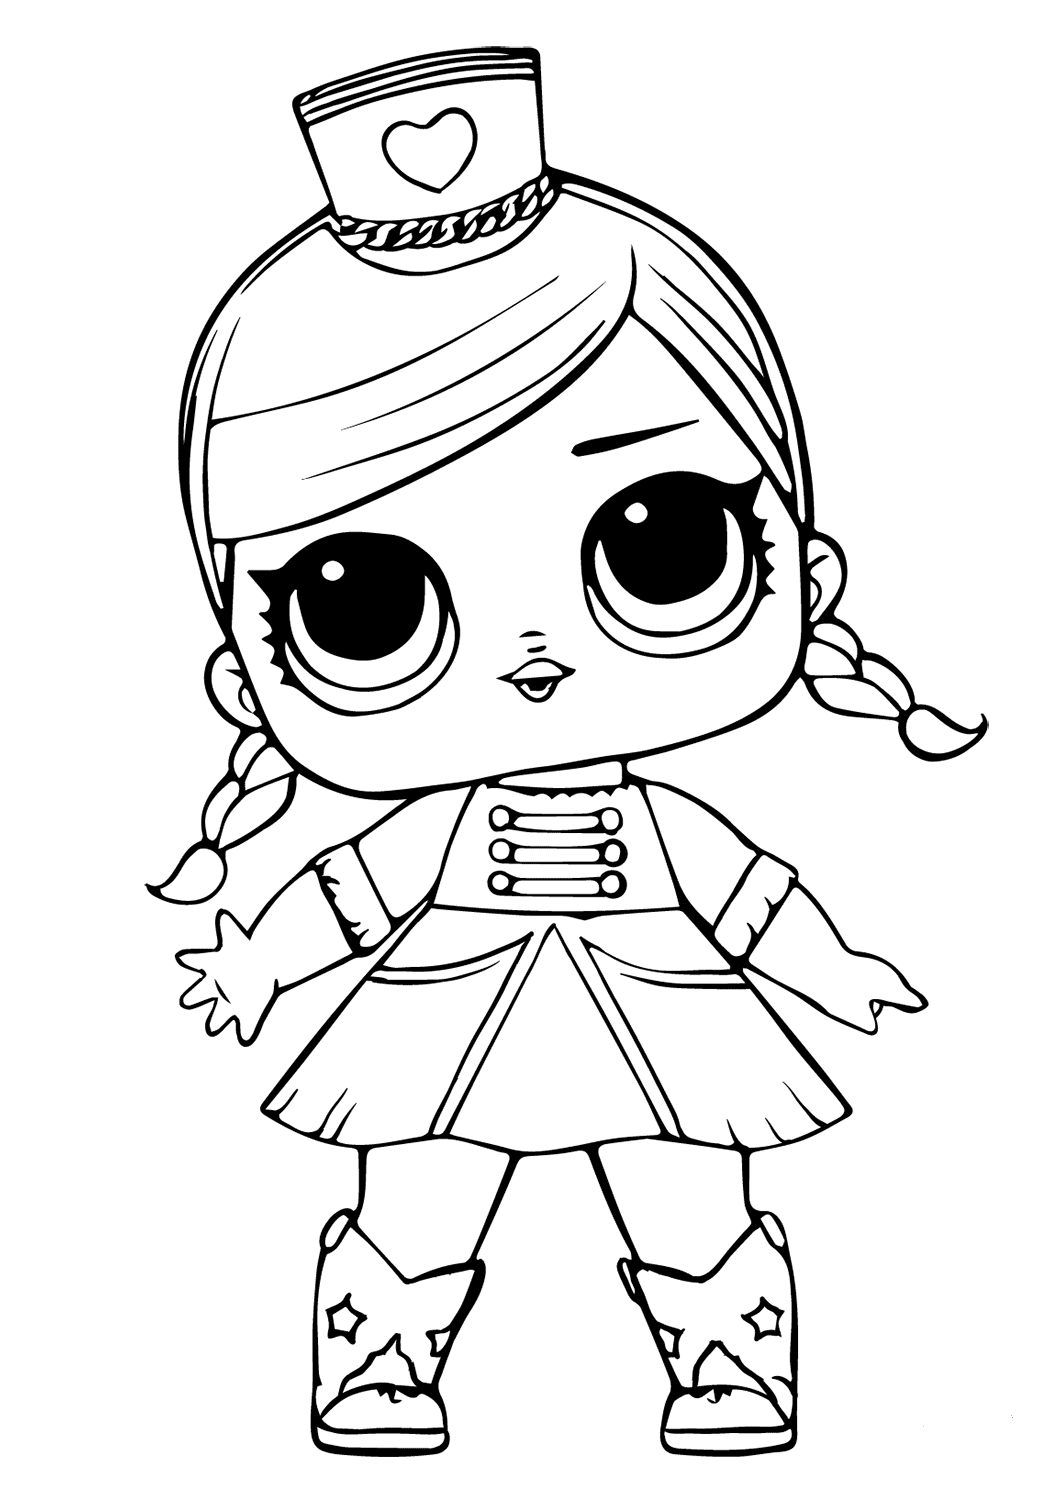 coloring dolls doll coloring pages best coloring pages for kids coloring dolls